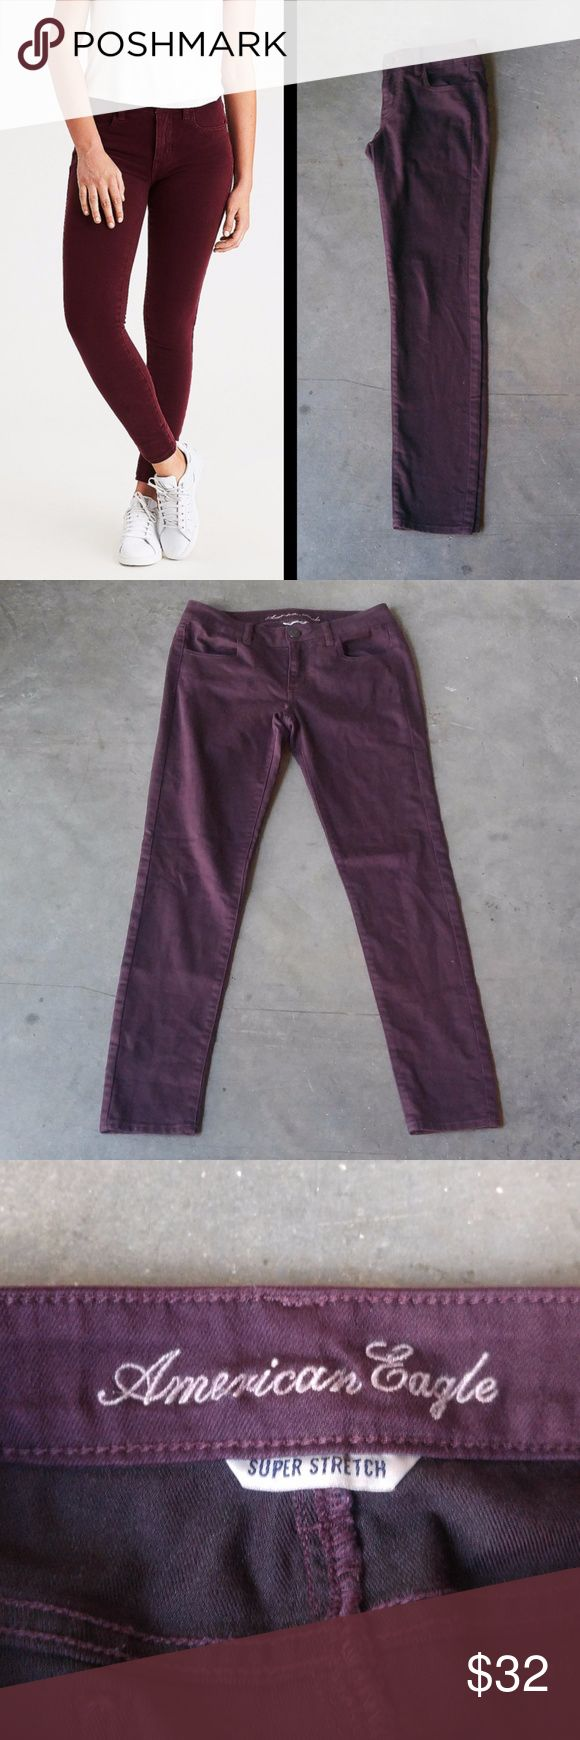 American Eagle Outfitters Purple Jeggings American Eagle jeggings, size 6 regular, in excellent condition! Jegging style is very fitted and skinny throughout but has stretch. Deeper eggplant purple color. Truest color is shown in actual photos. Cover photo from American Eagle website is meant to show fit. No trades. No modeling. Make a reasonable offer. Thanks! American Eagle Outfitters Jeans Skinny